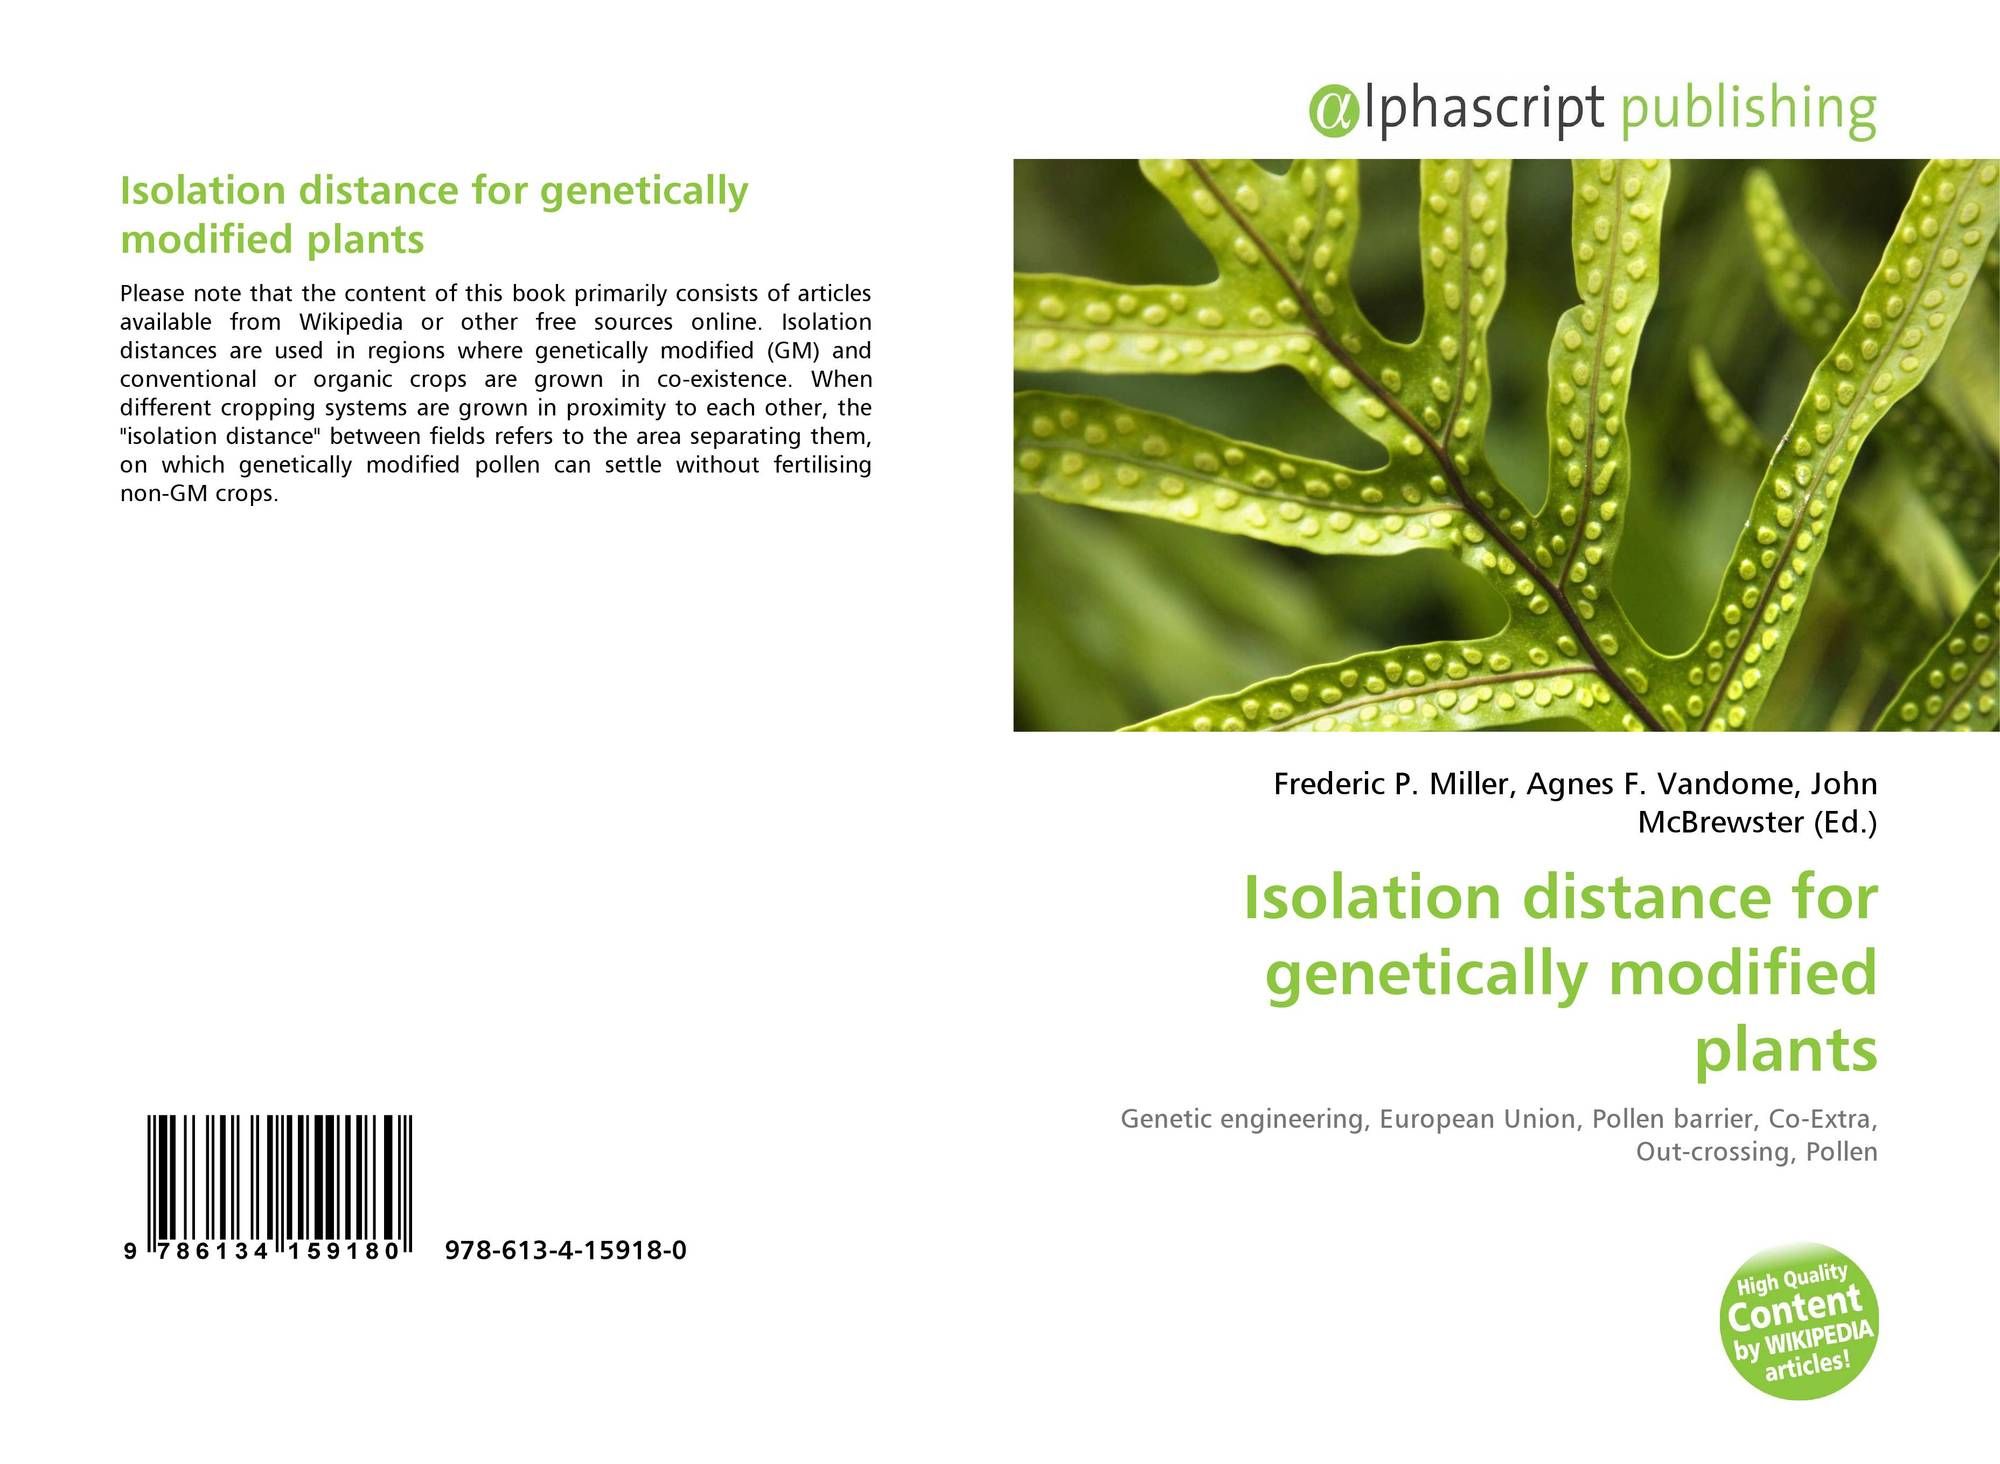 Genetic engineering wikipedia - Bookcover Of Isolation Distance For Genetically Modified Plants